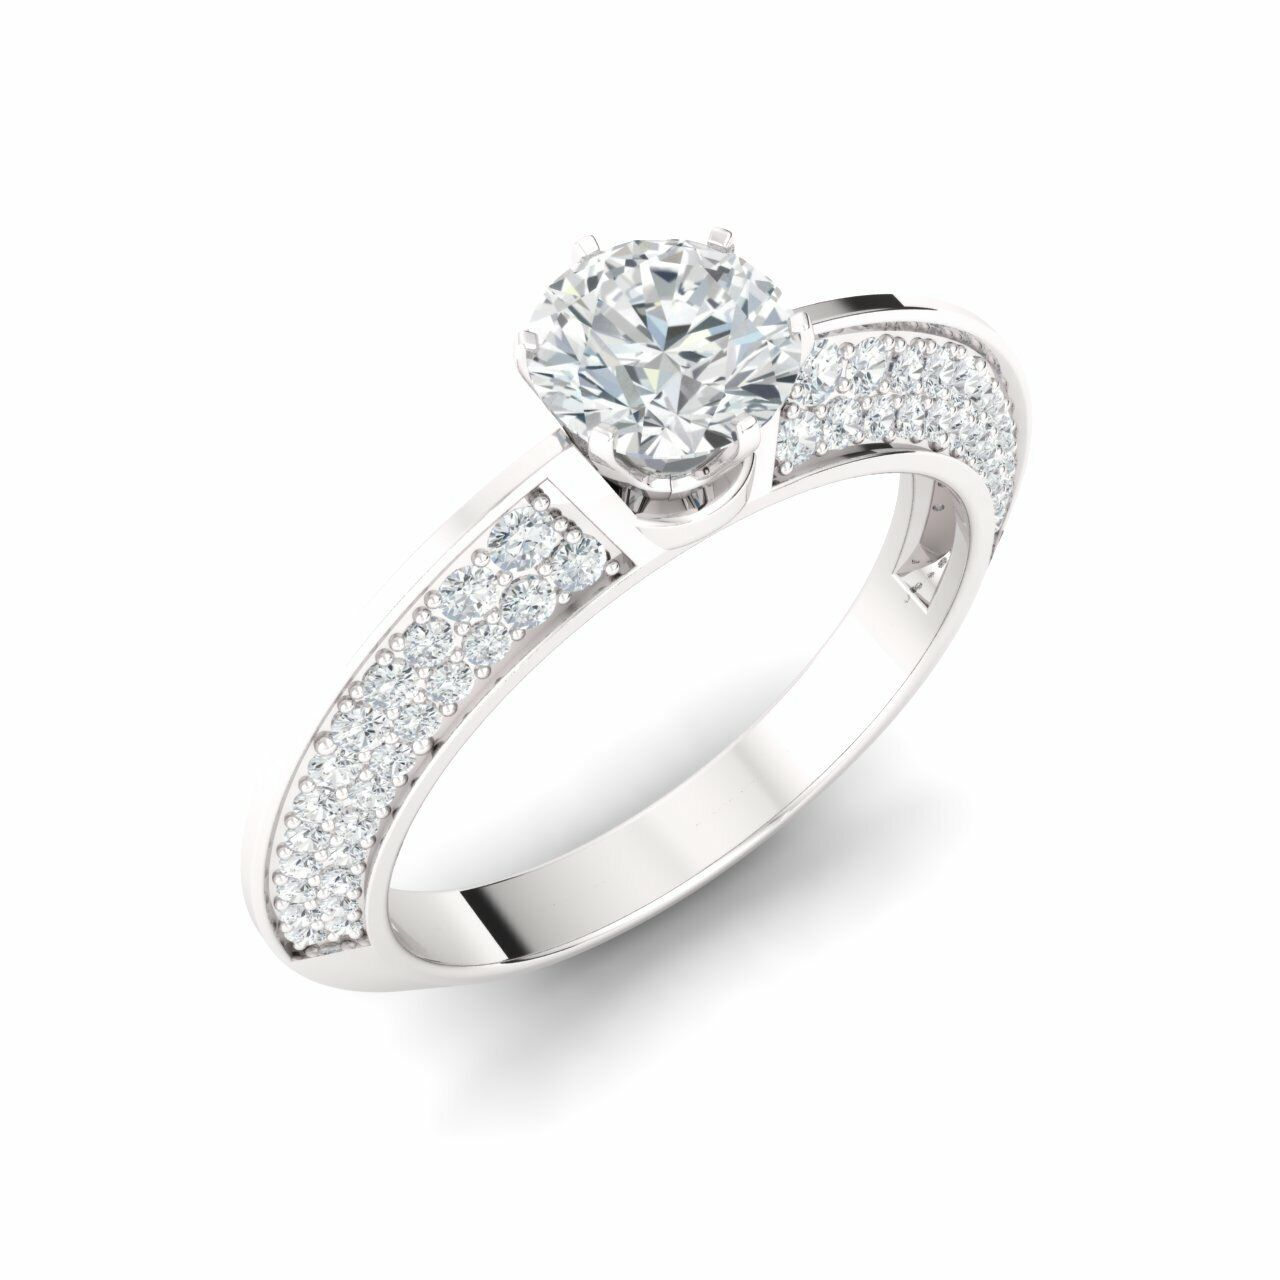 GIA Certified 1.04 Ct Round H/SI2 Diamond 14k White Gold Engagement Ring Size 7